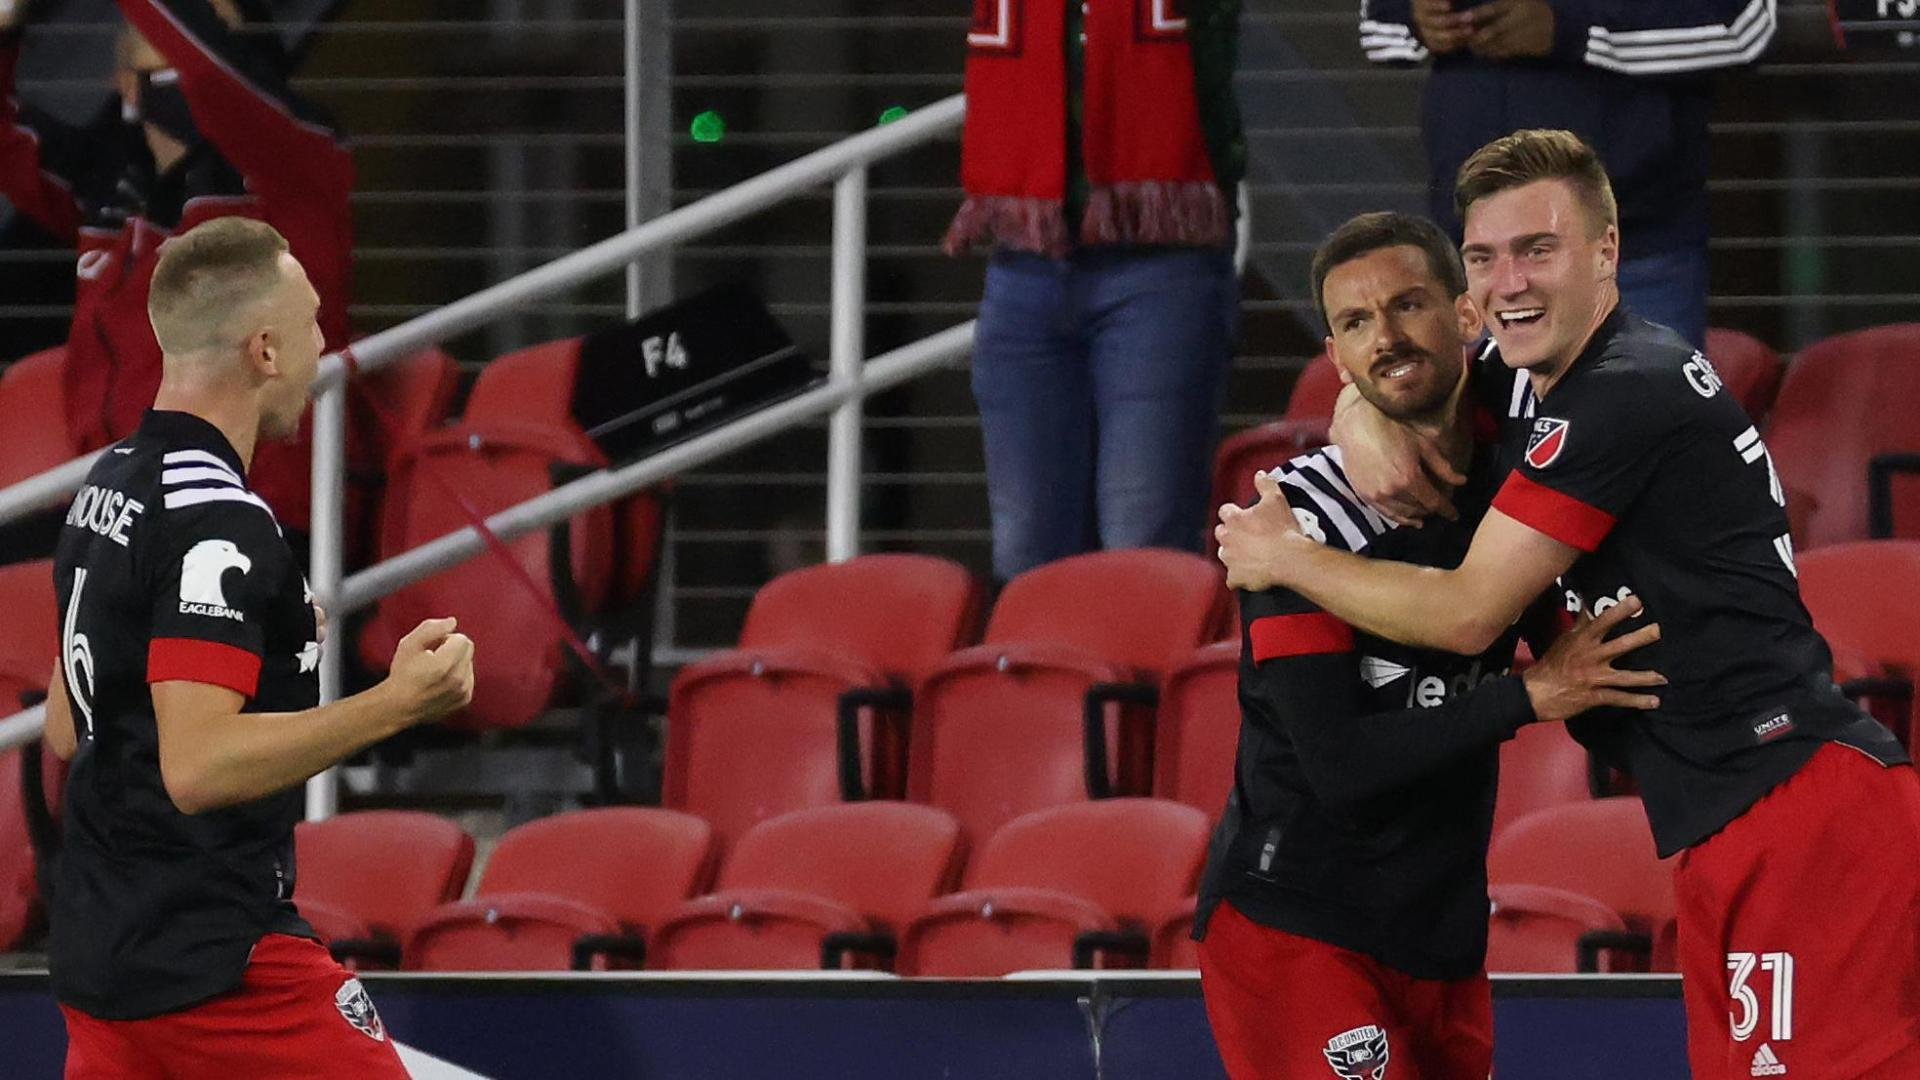 D.C. United's Hines-Ike scores an incredible goal in 2-1 win